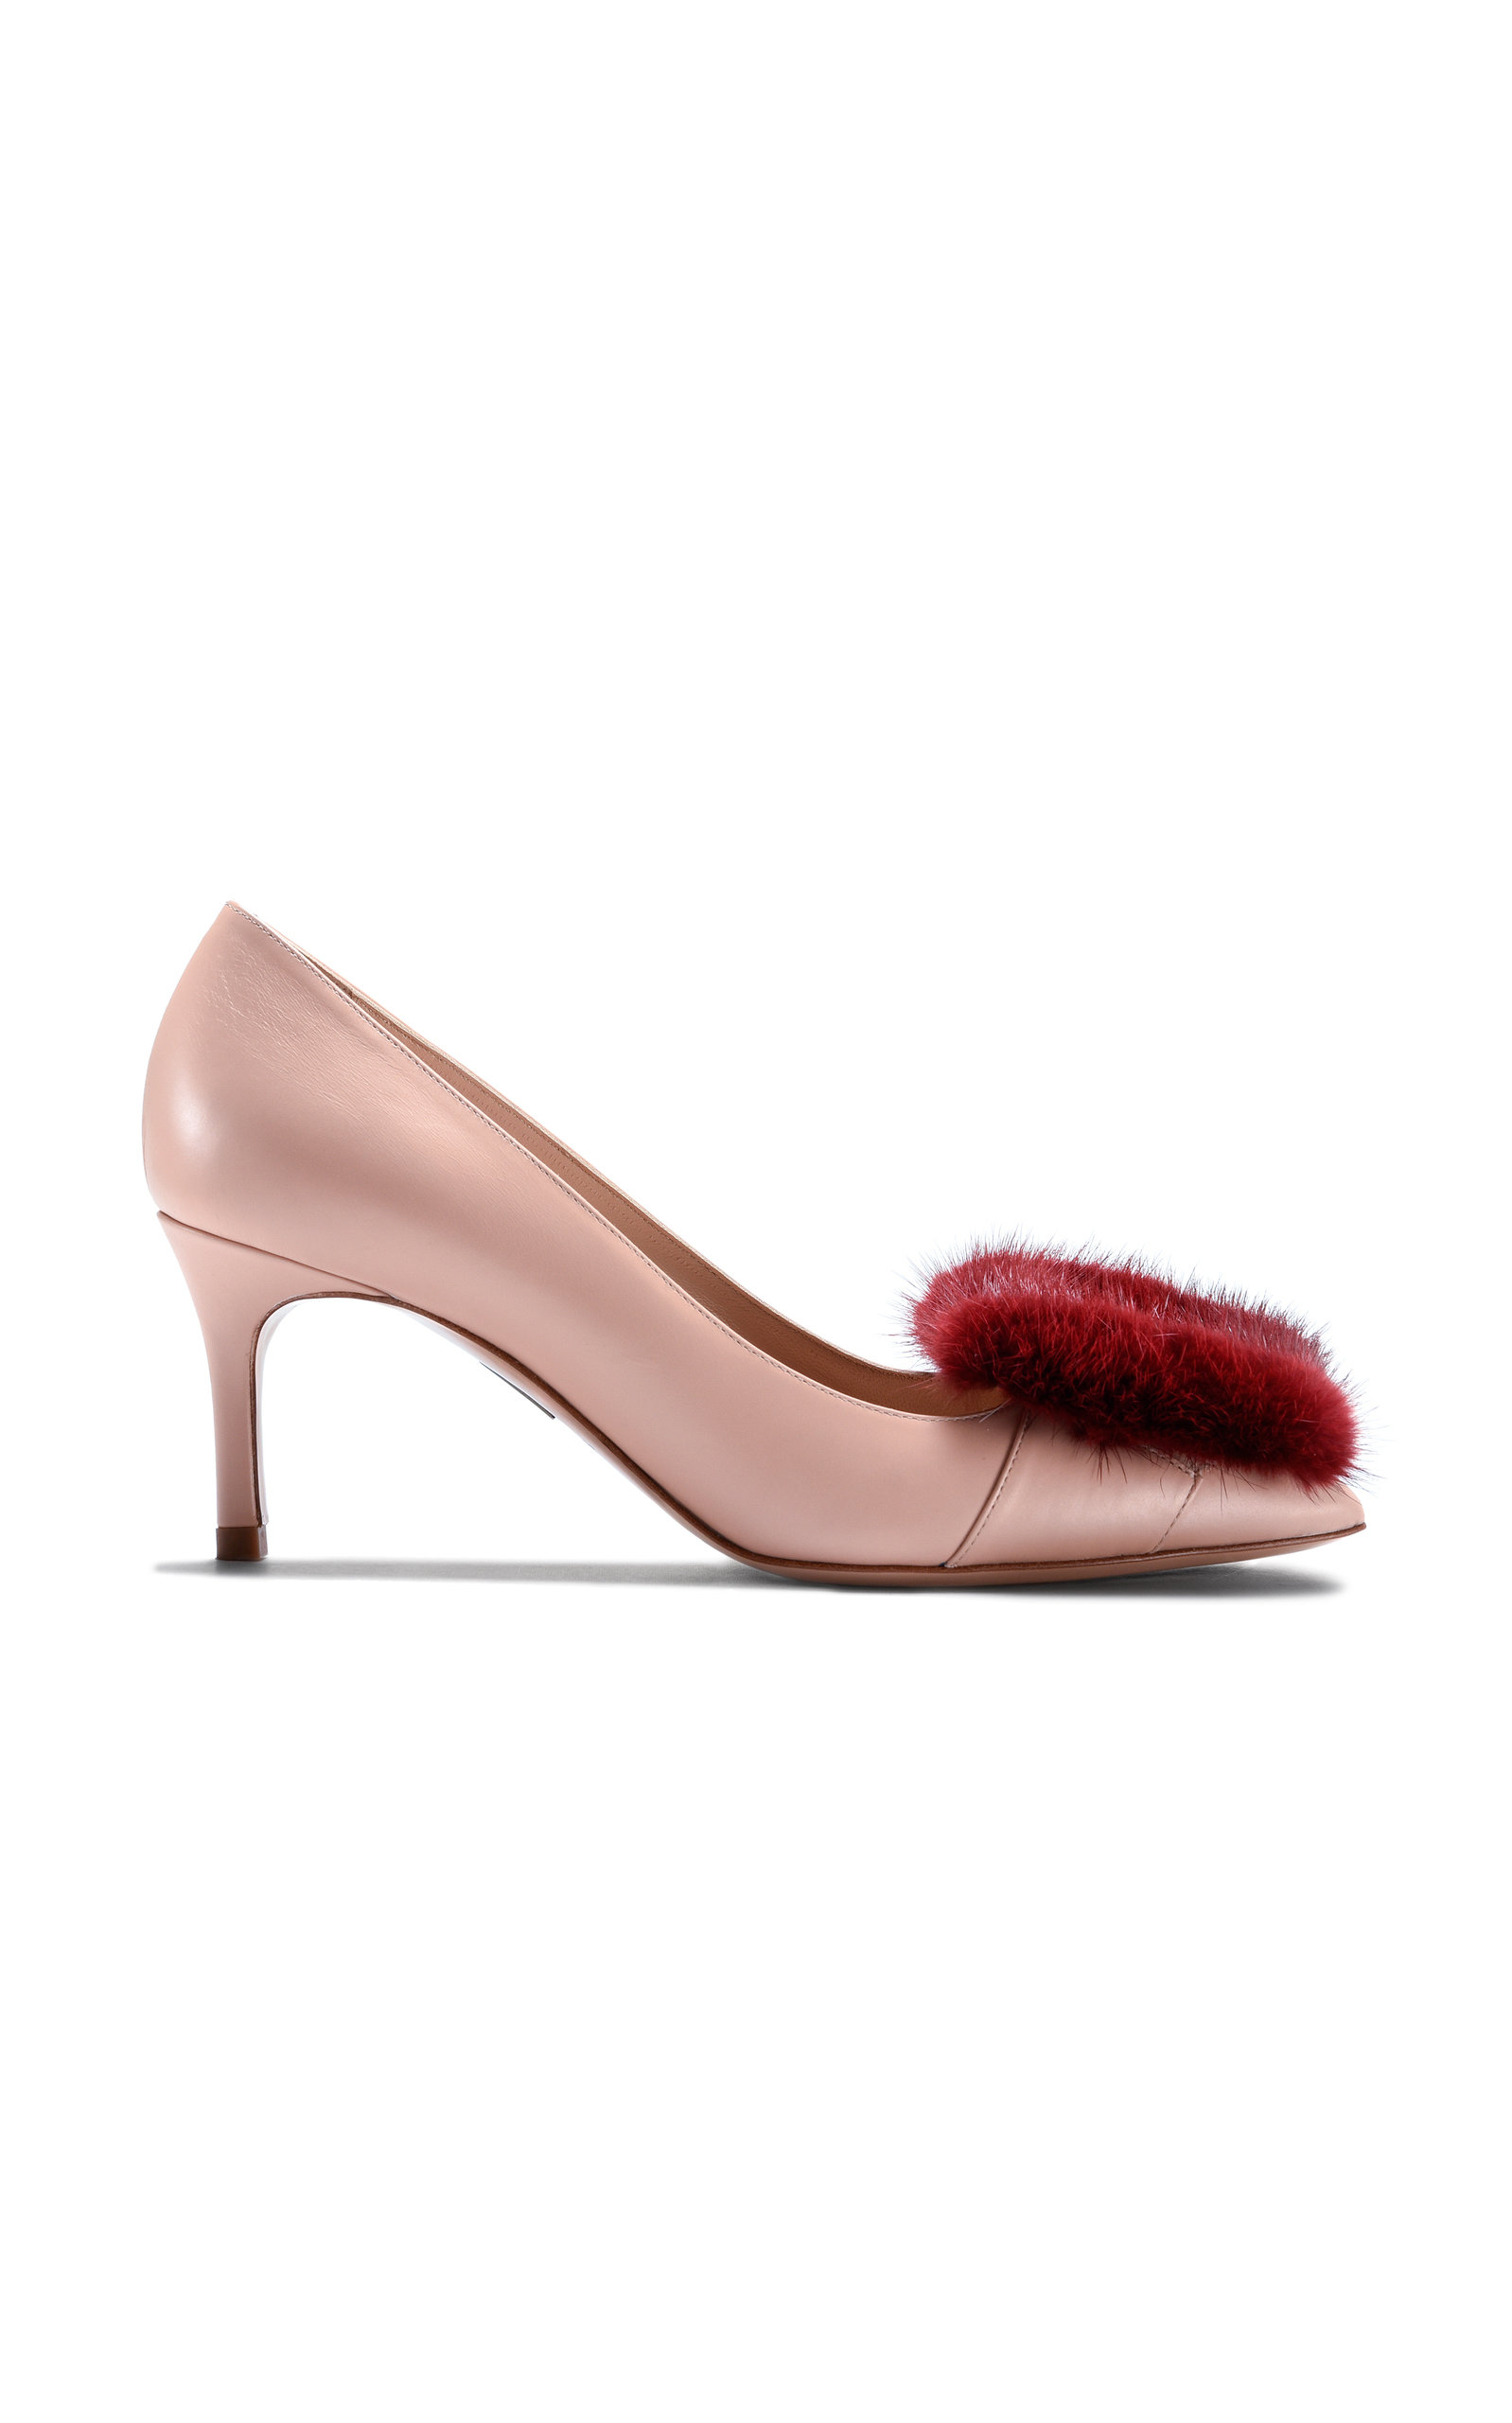 A BY ANABELLE INGA MINK PUMP